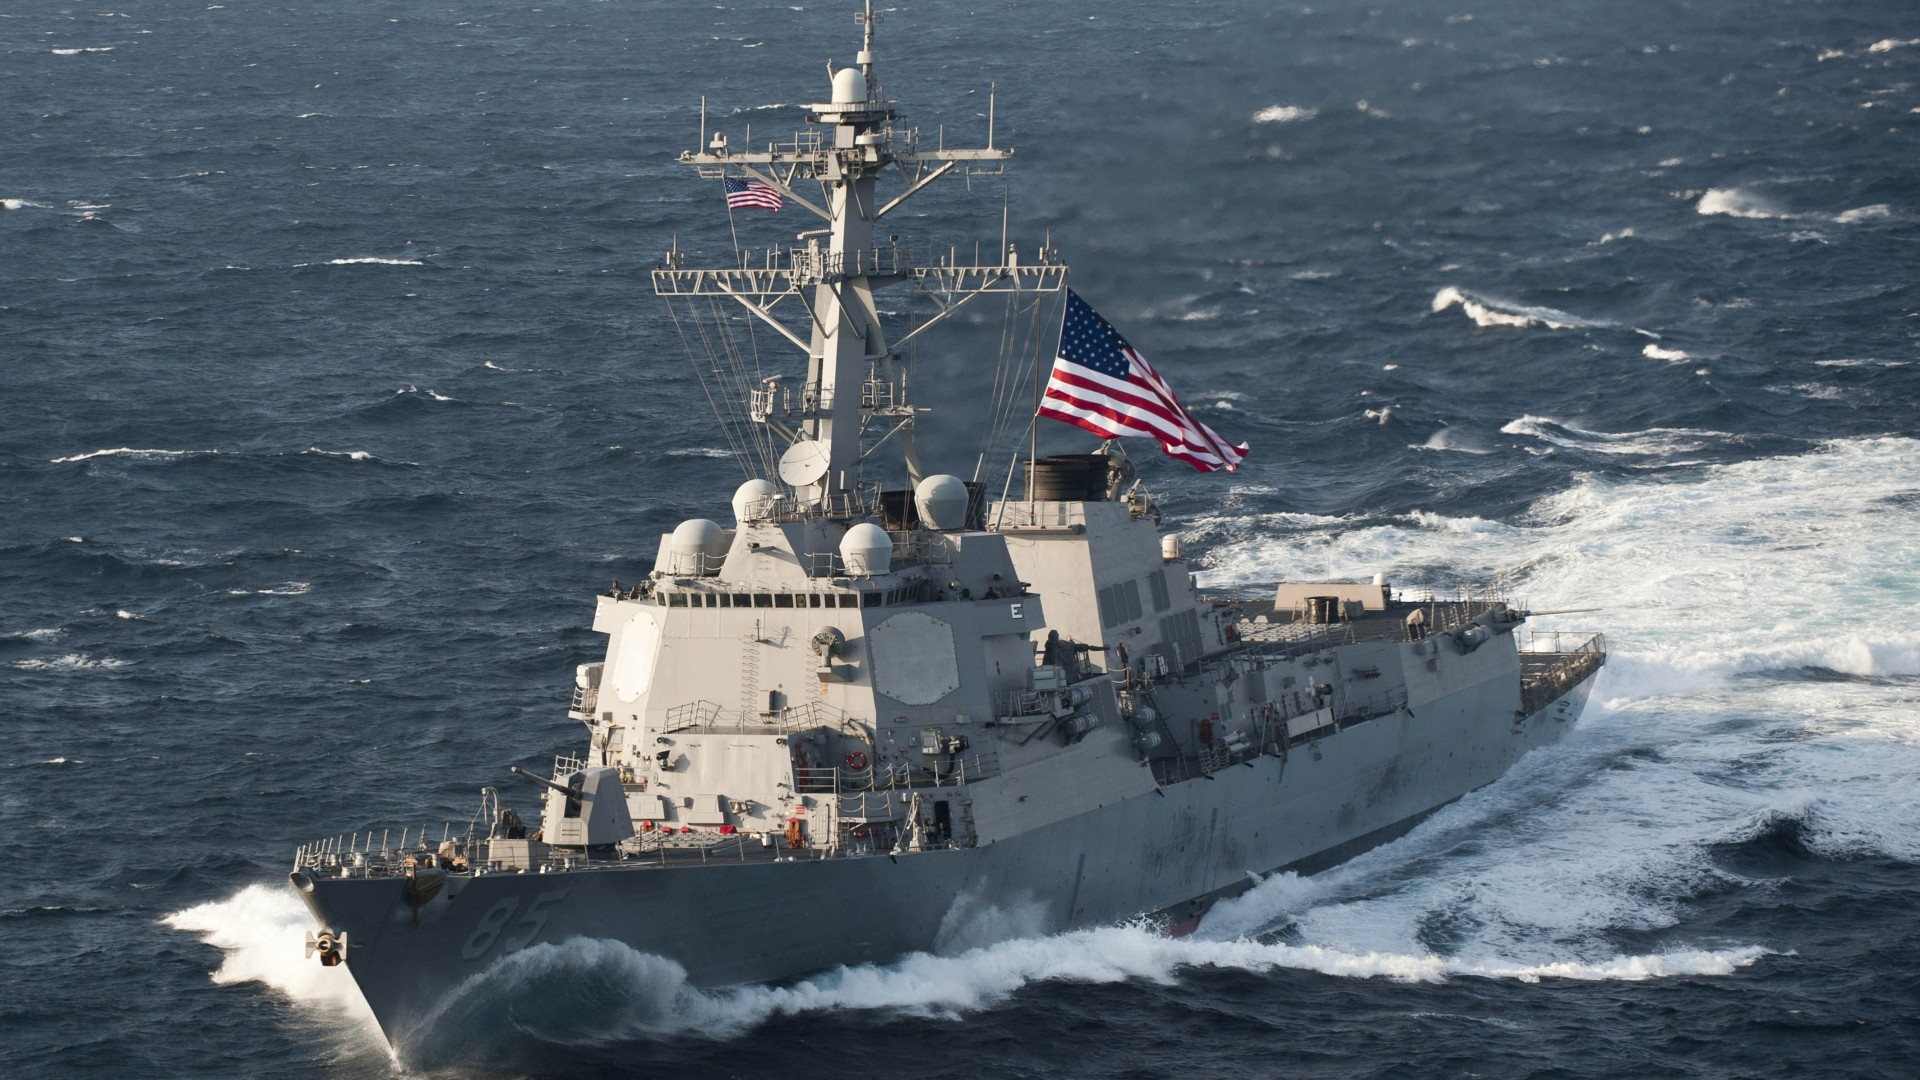 USS McCampbell, destroyer, Arleigh Burke-class, DDG-85, U.S. Navy, warship (horizontal)